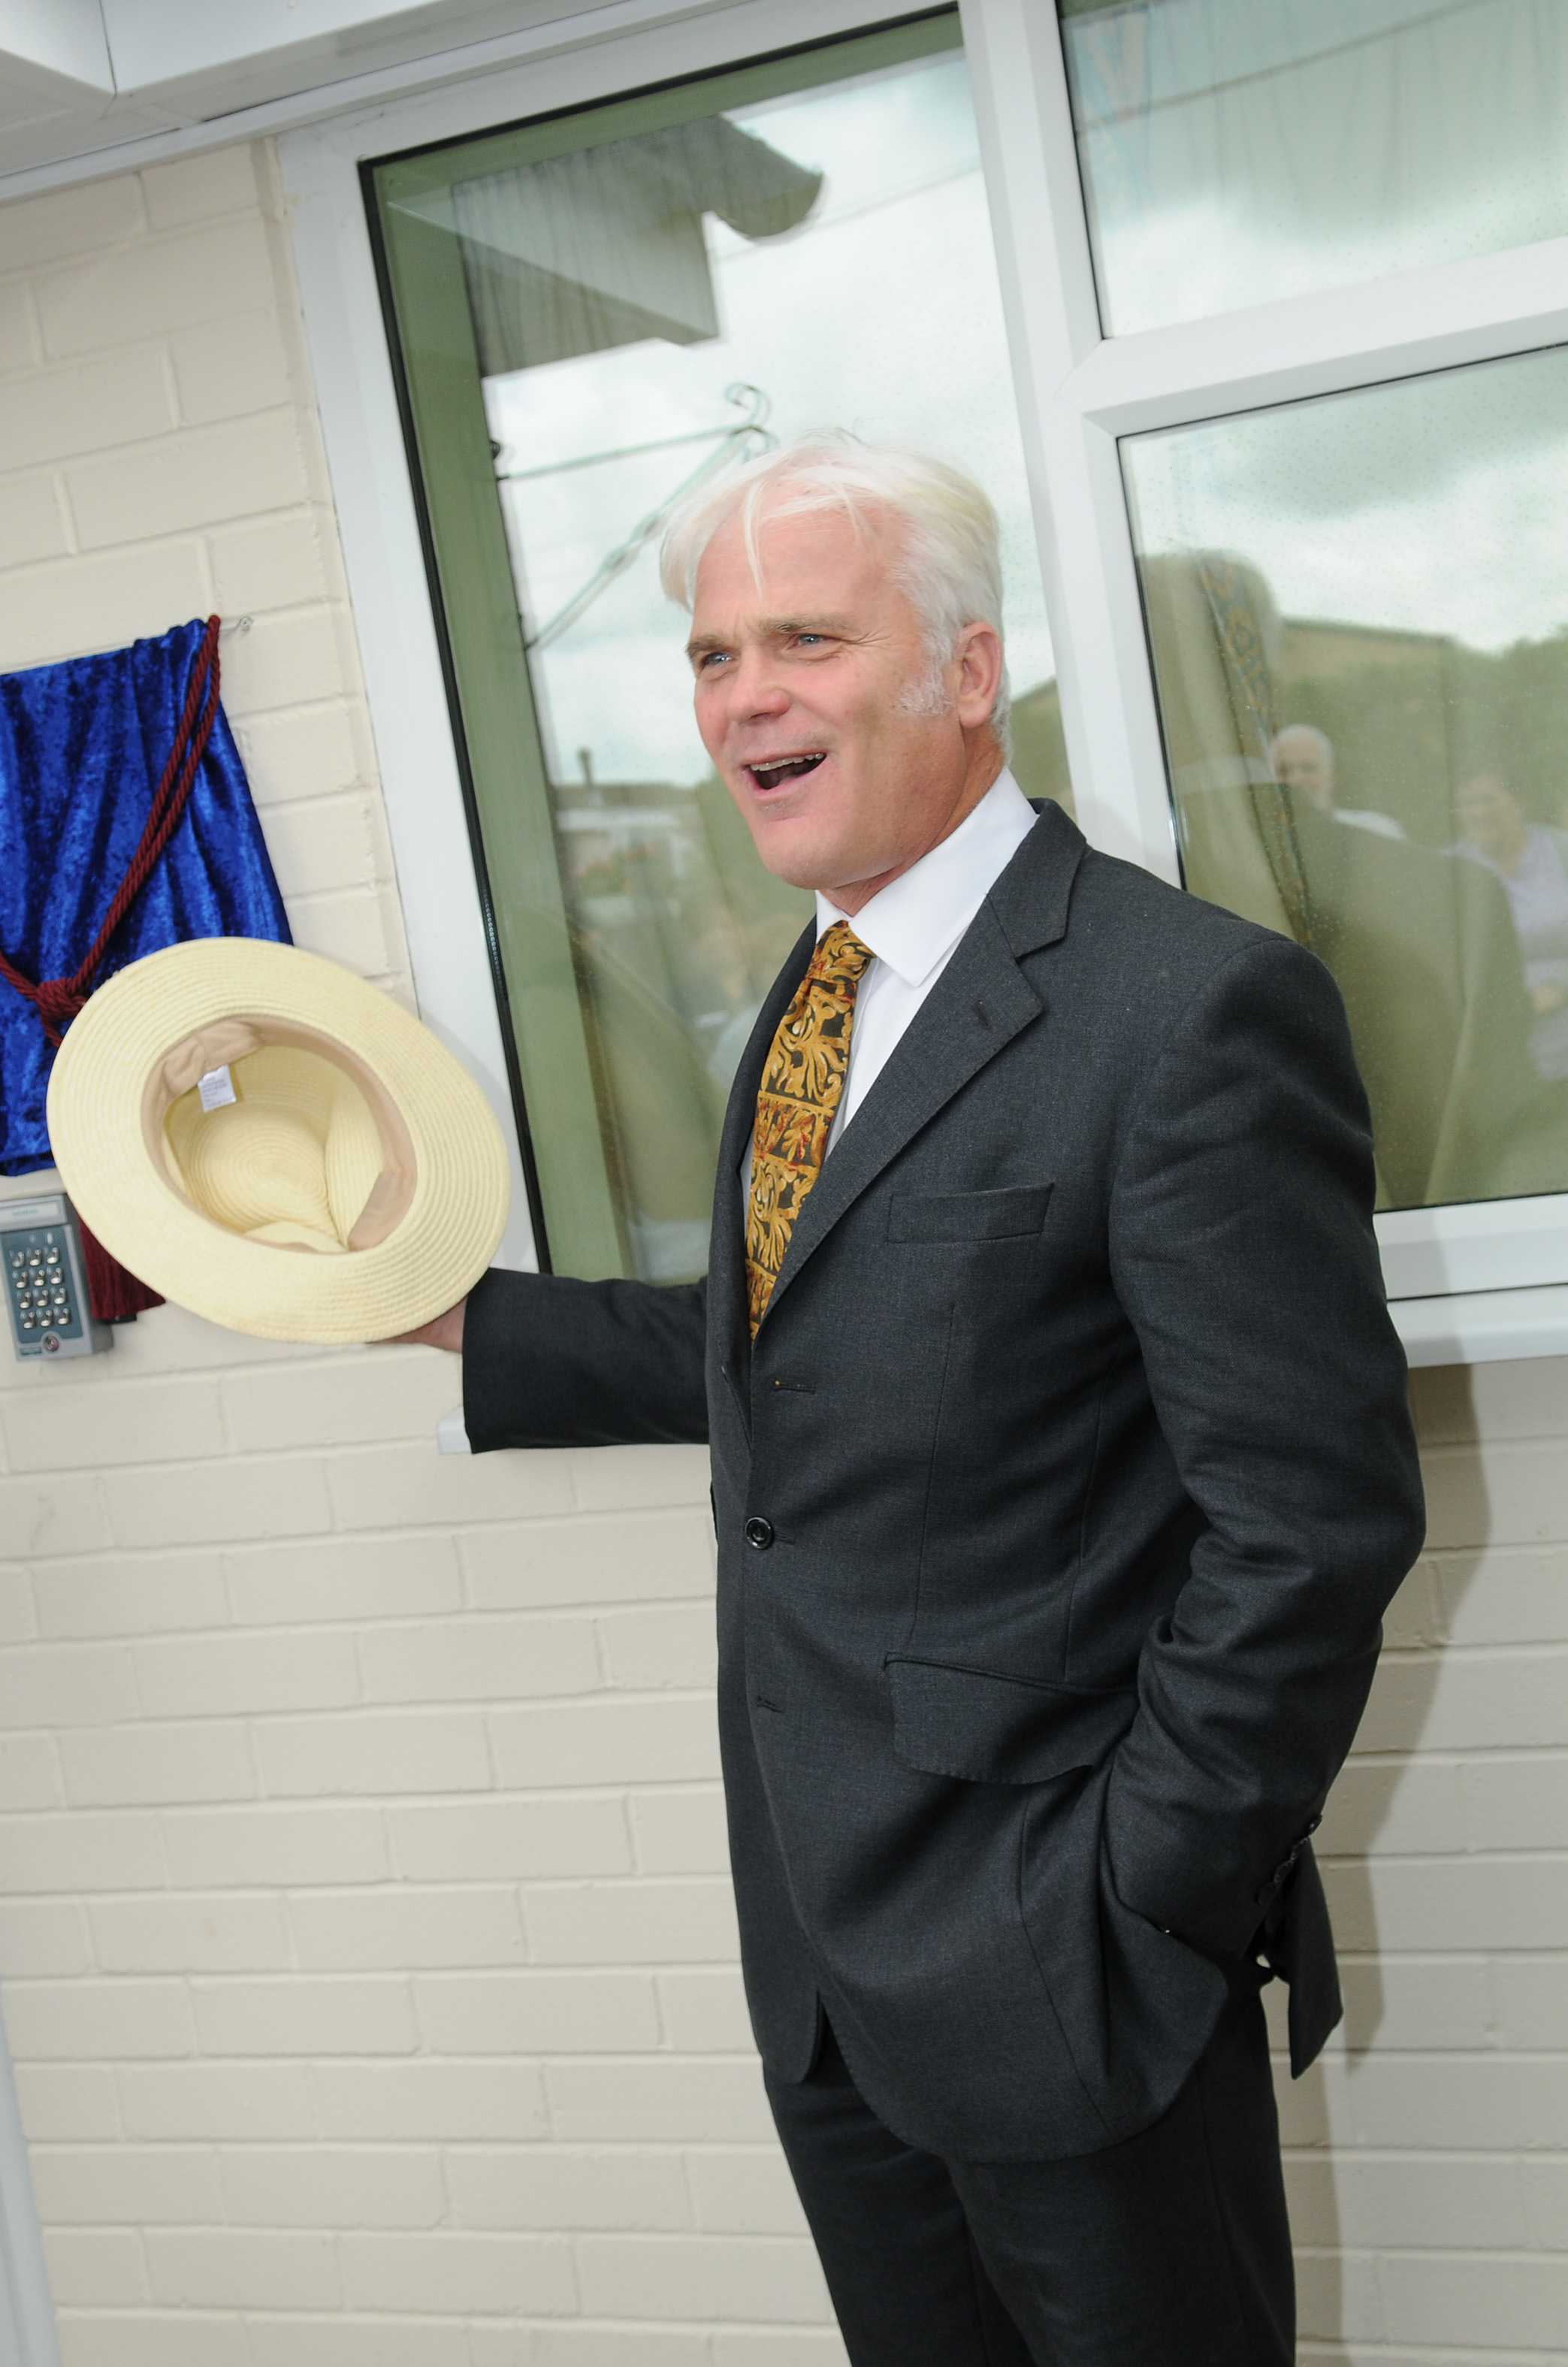 MP Desmond Swayne unveils a Gold Standard plaque at St Elmo Residential Home in Ringwood. DC7735P2..Picture by Tom Gregory.